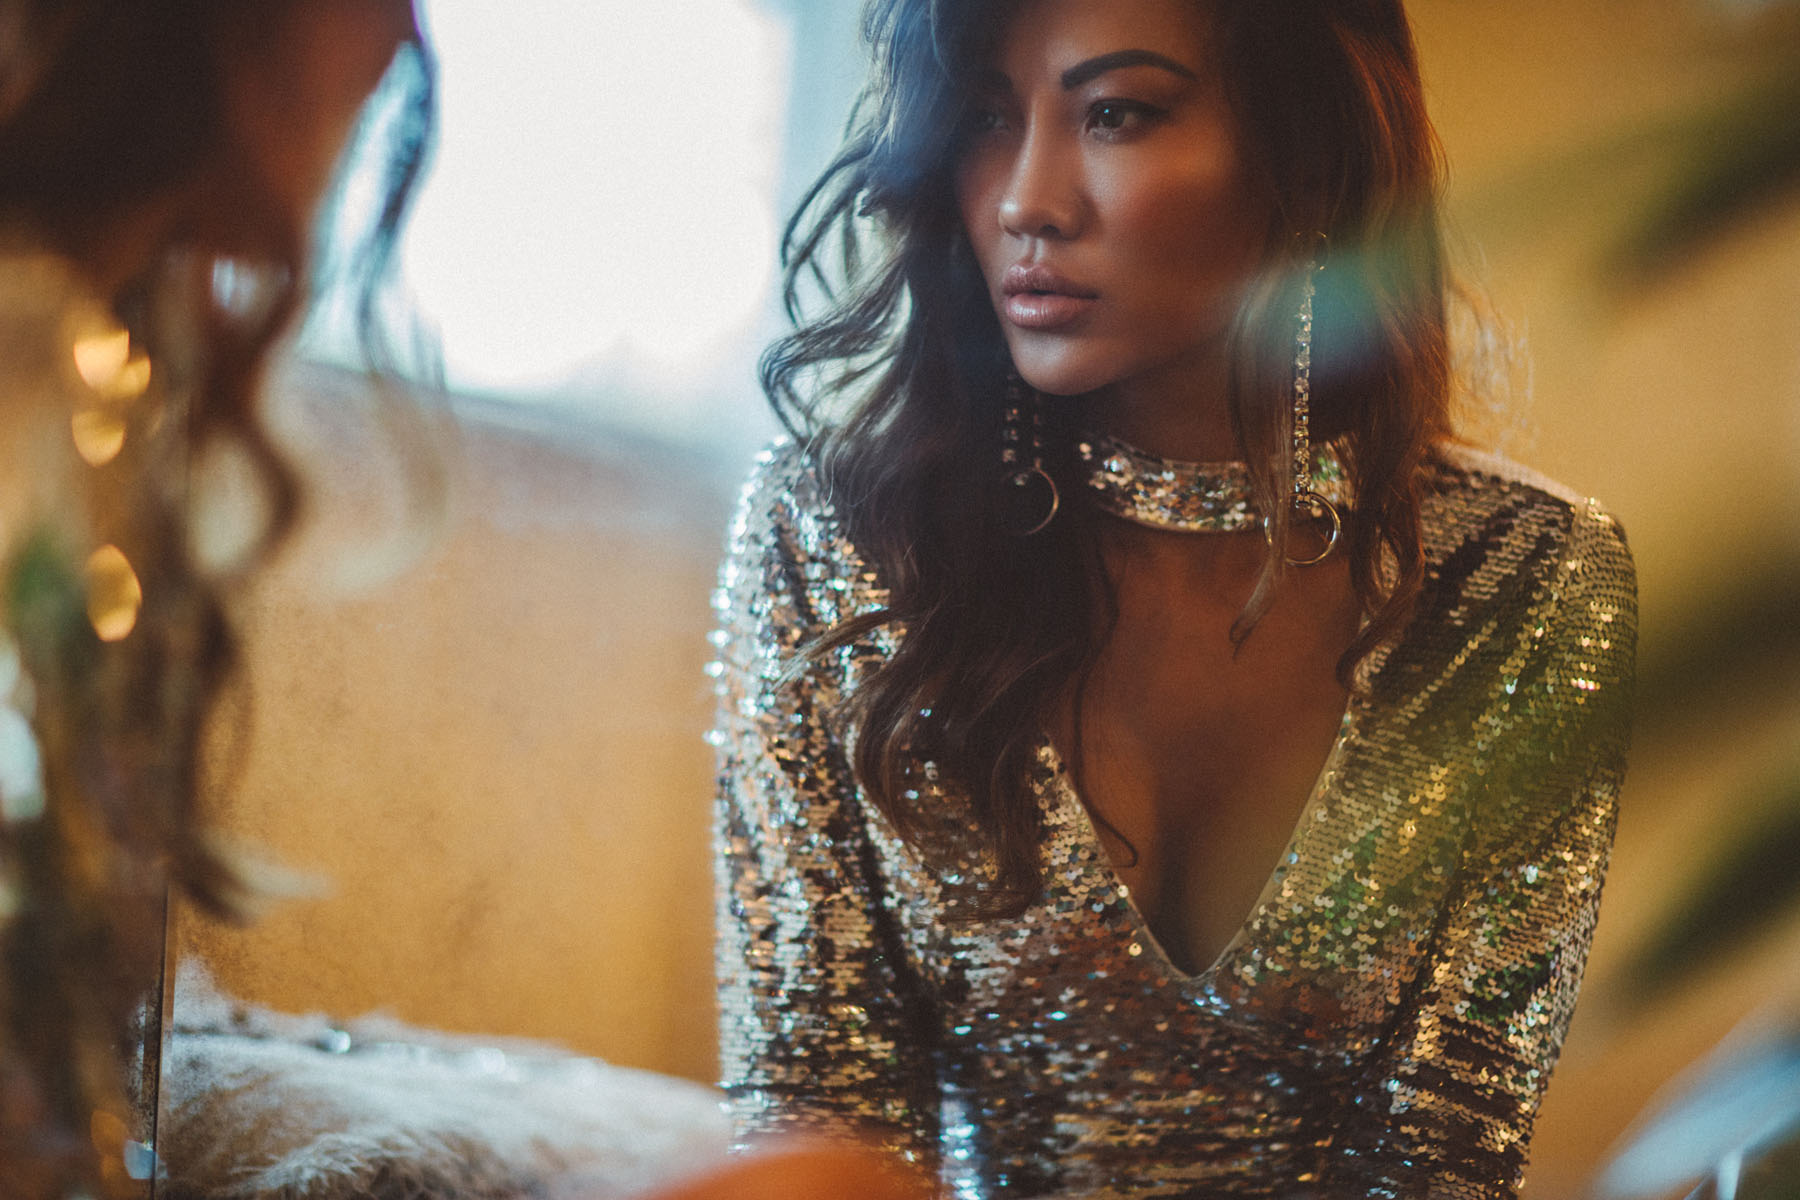 Metallic Must-Have Pieces - Sequin Silver Dress with Statement Earrings // Notjessfashion.com